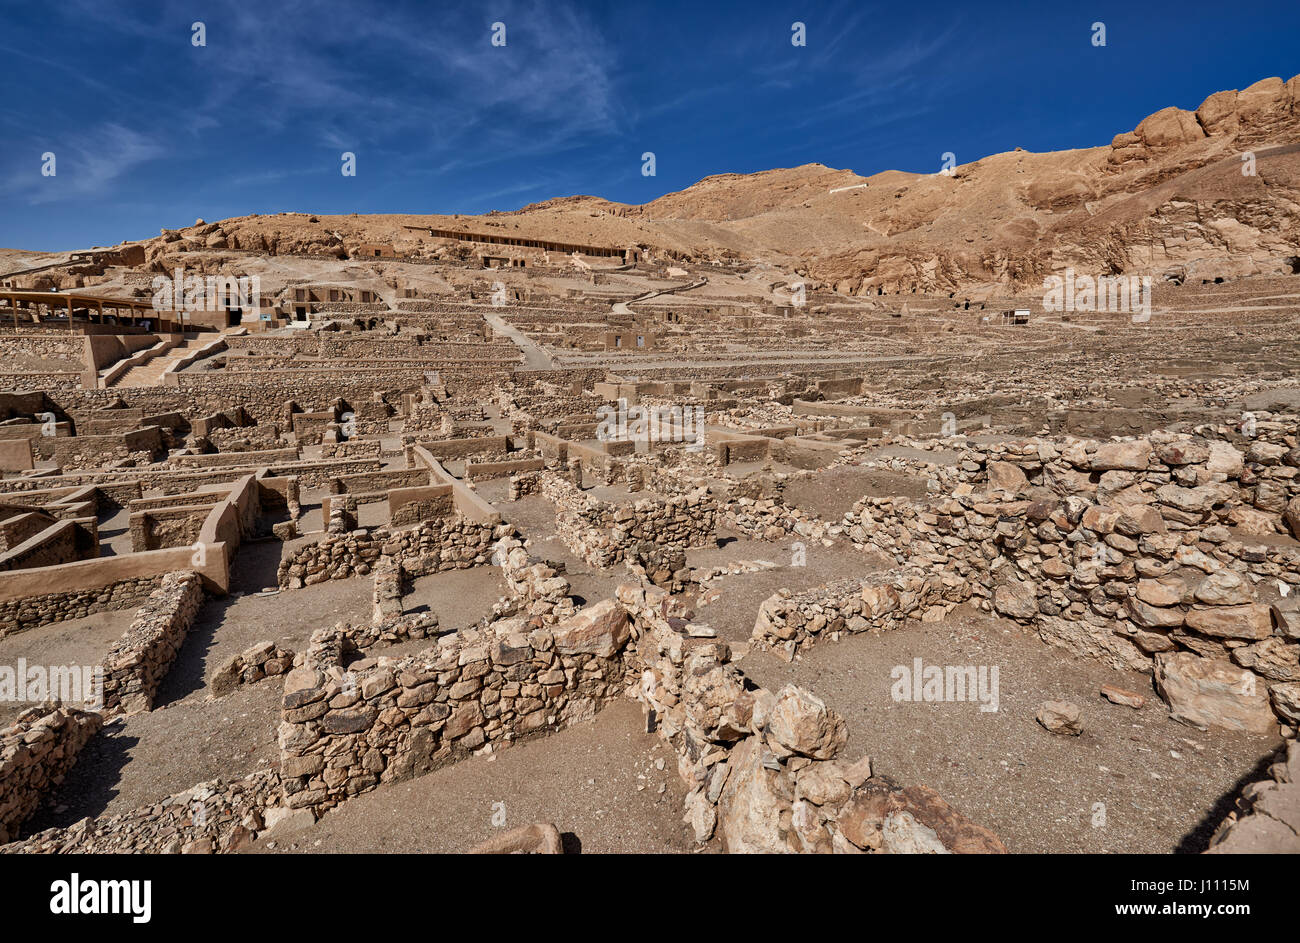 Deir el-Medina, ancient Egyptian village was home to the artisans who worked on the tombs in the Valley of the Kings, - Stock Image